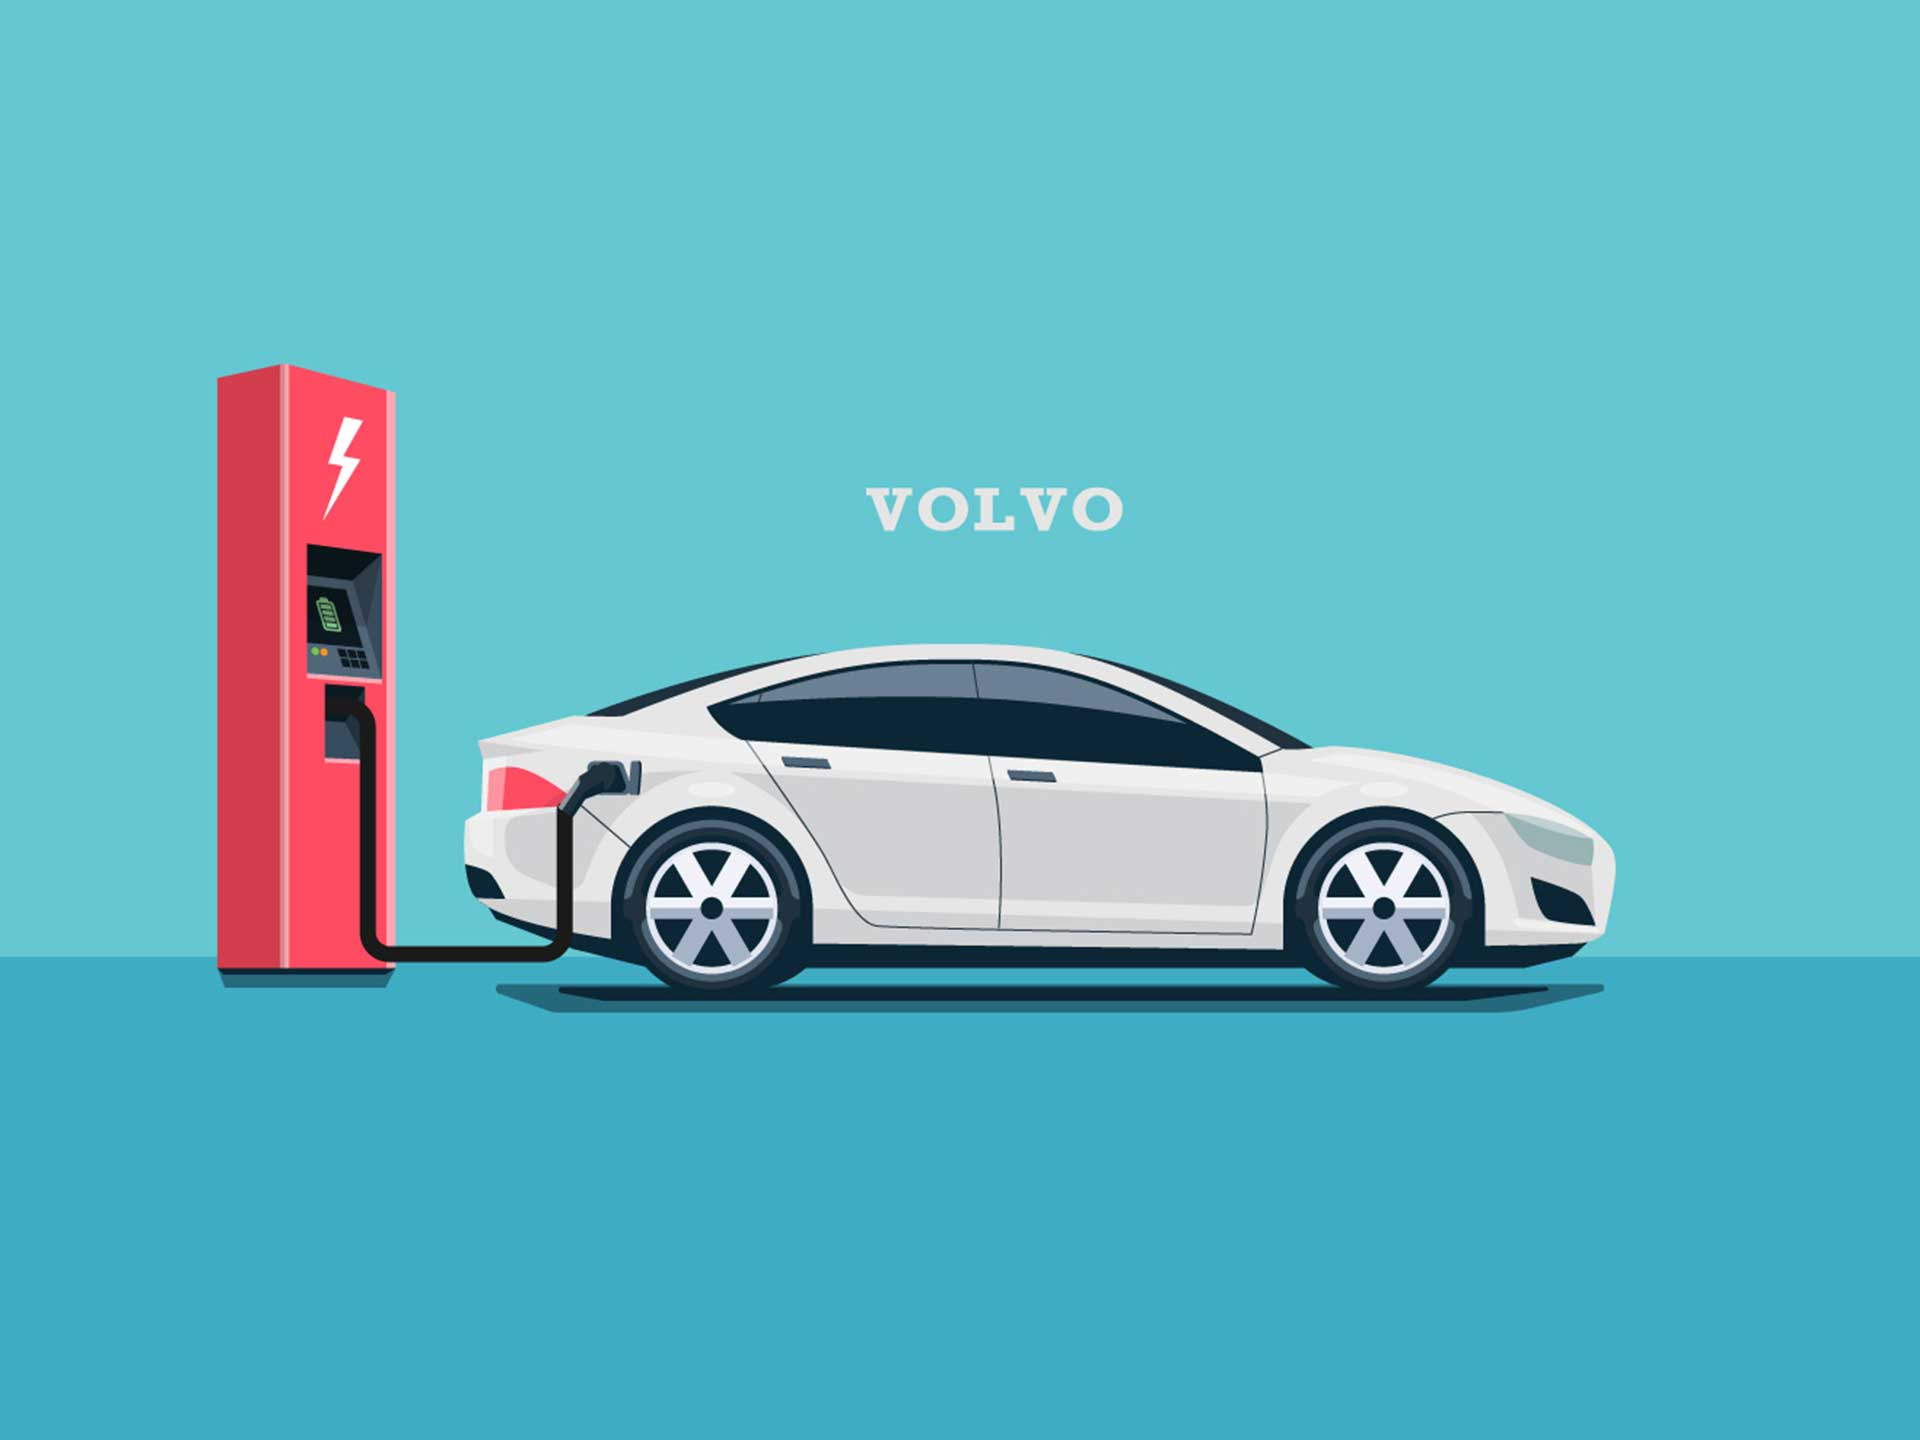 Volvo to fully transition to electric vehicles by 2030